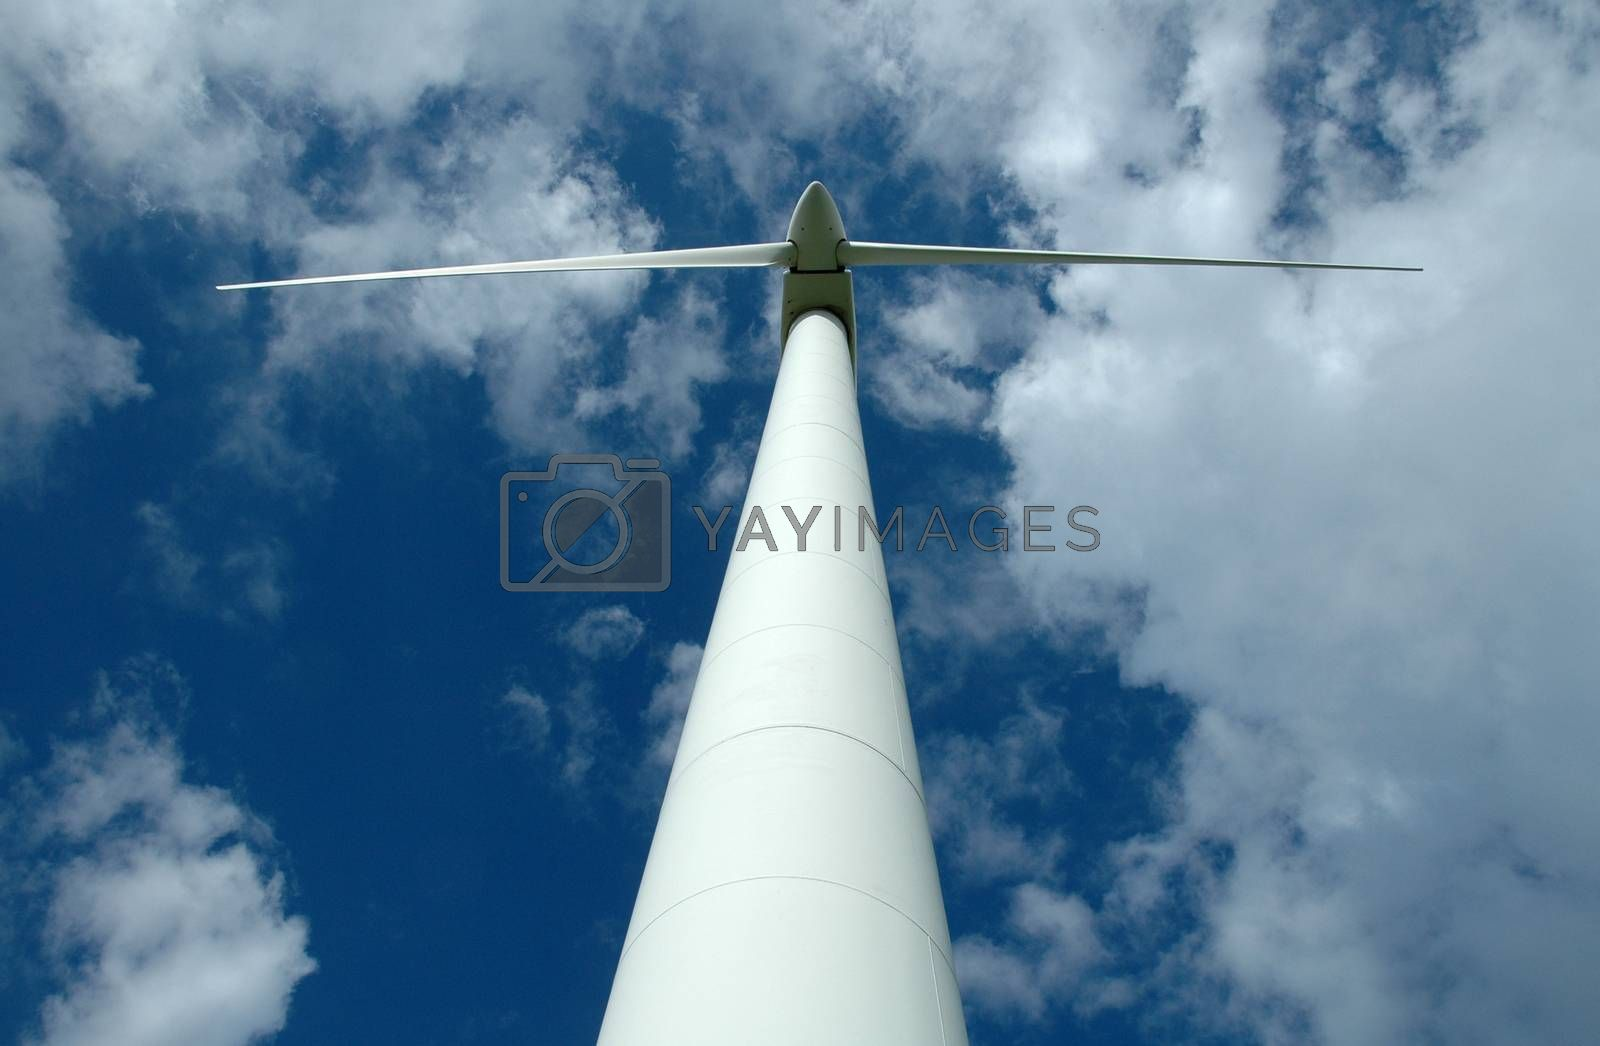 A view of a white wind generator from the ground